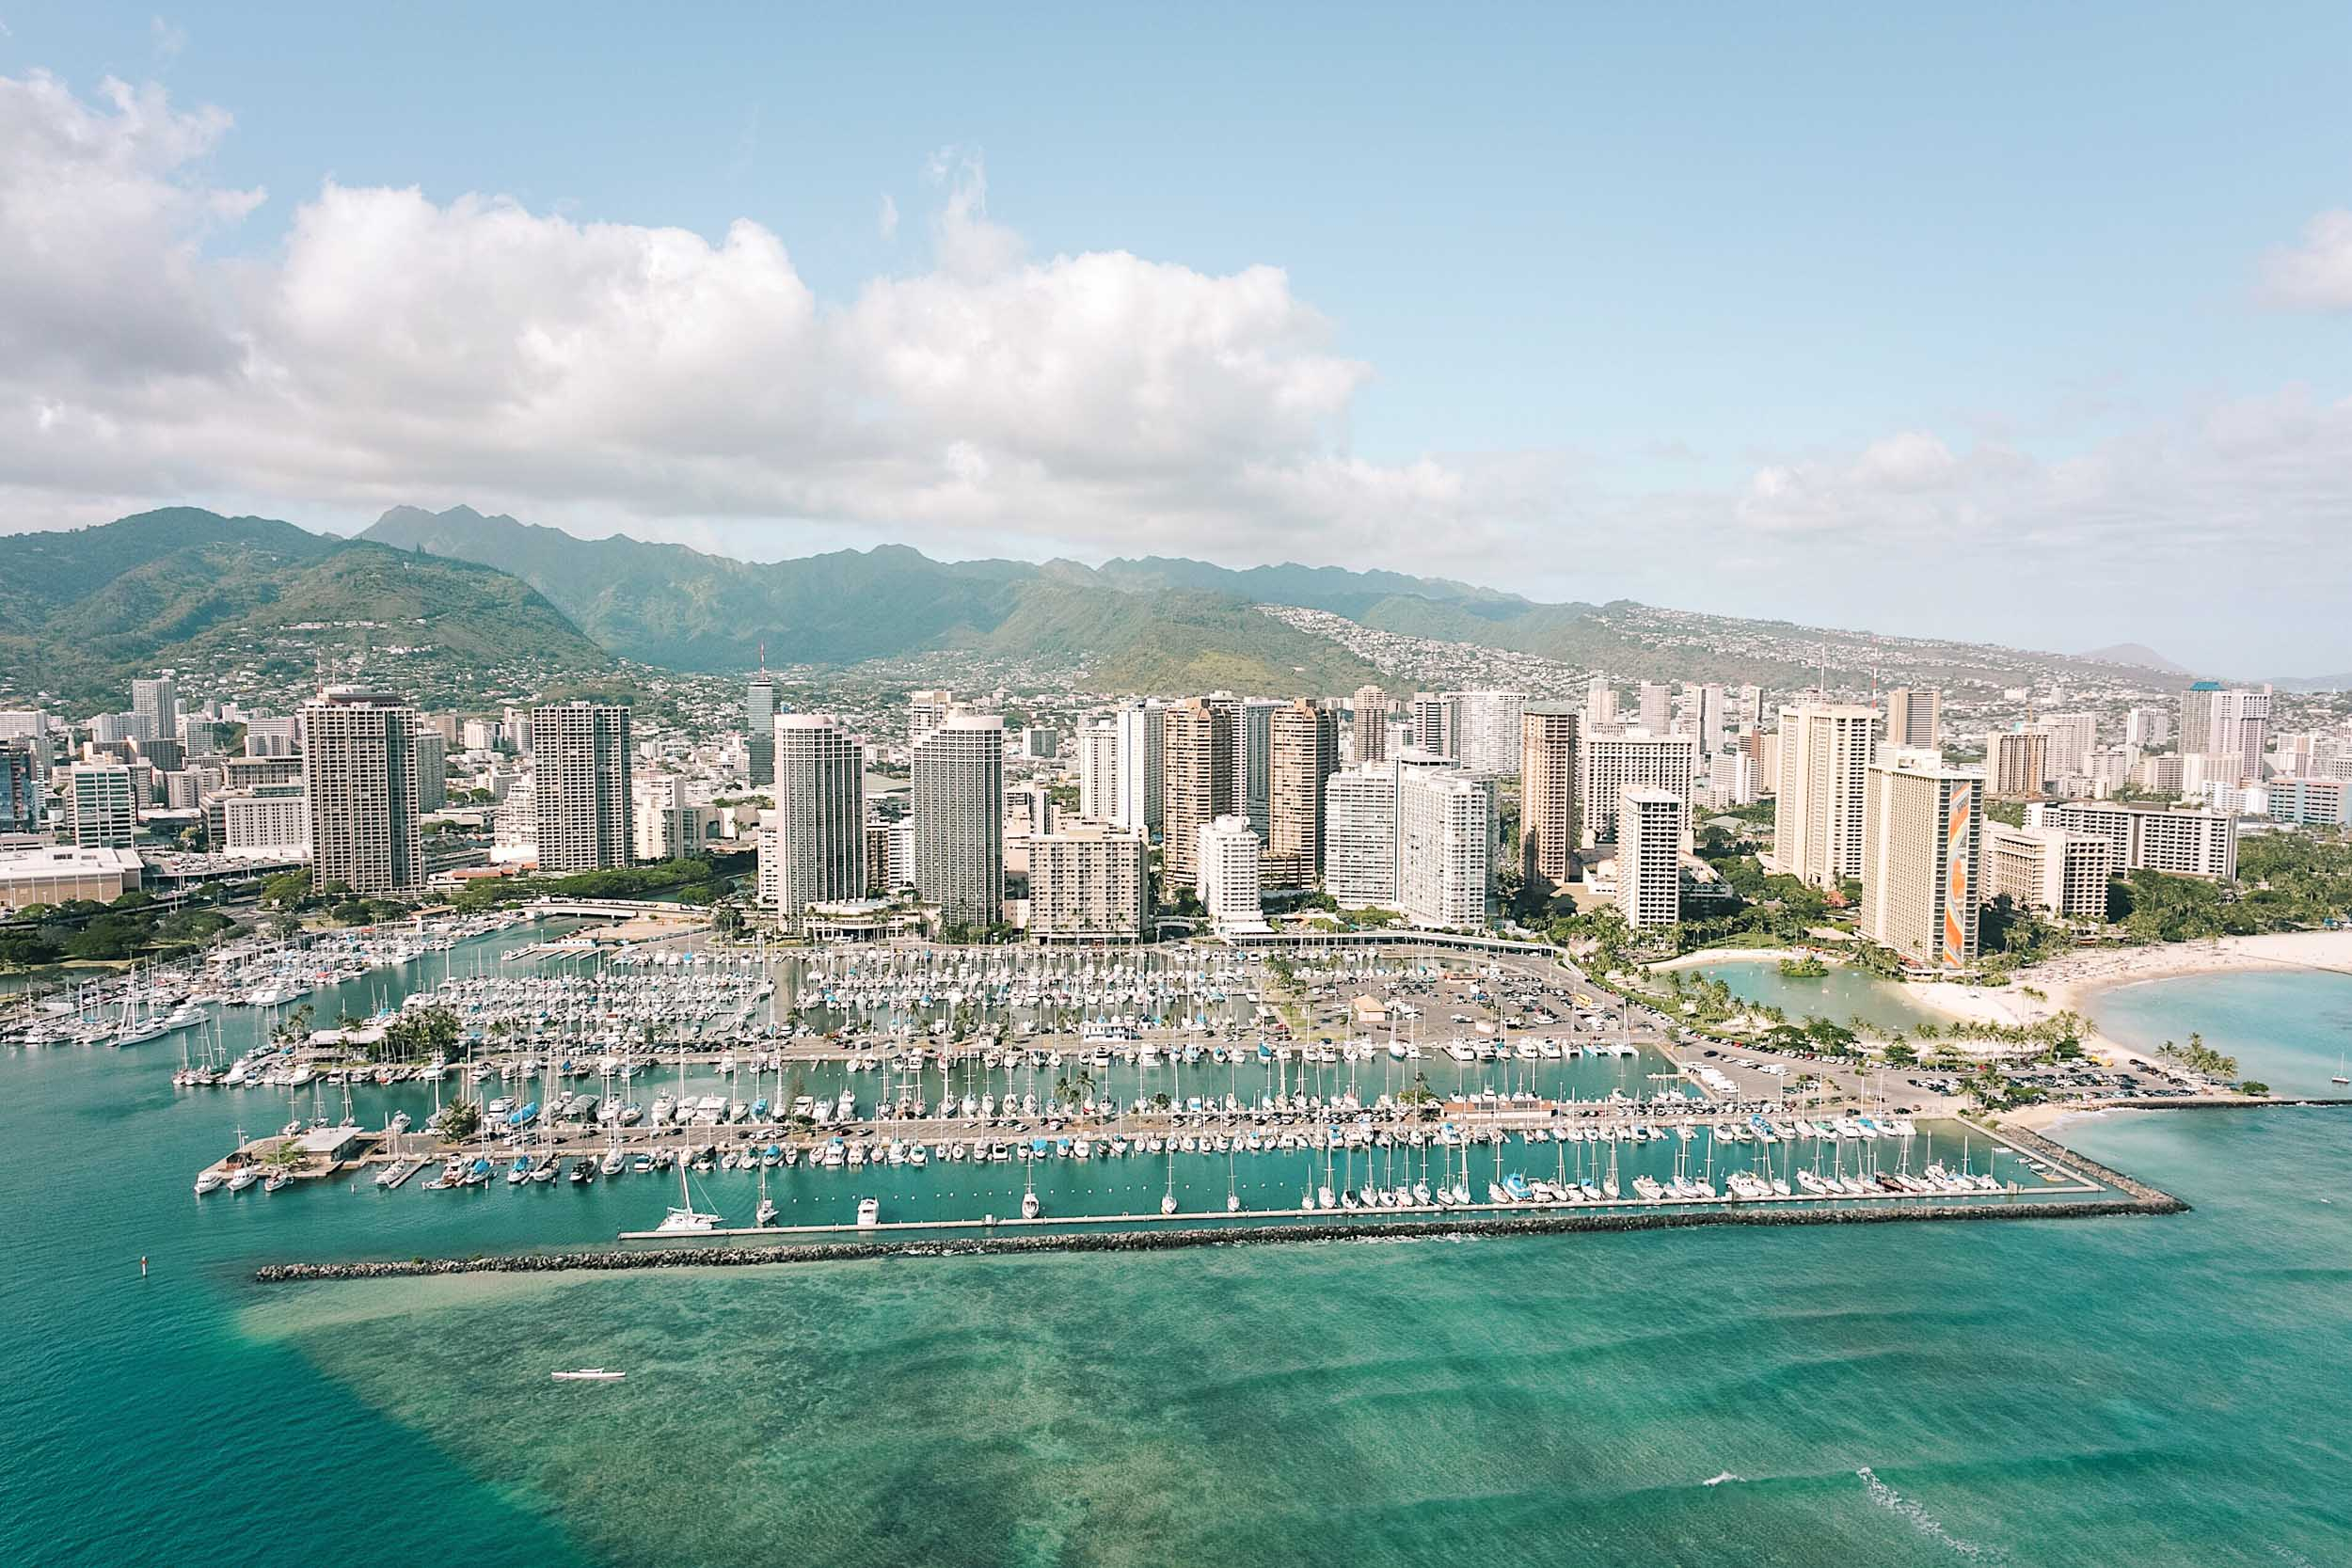 One of the top 10 things to do in Hawaii - a doors off helicopter tour